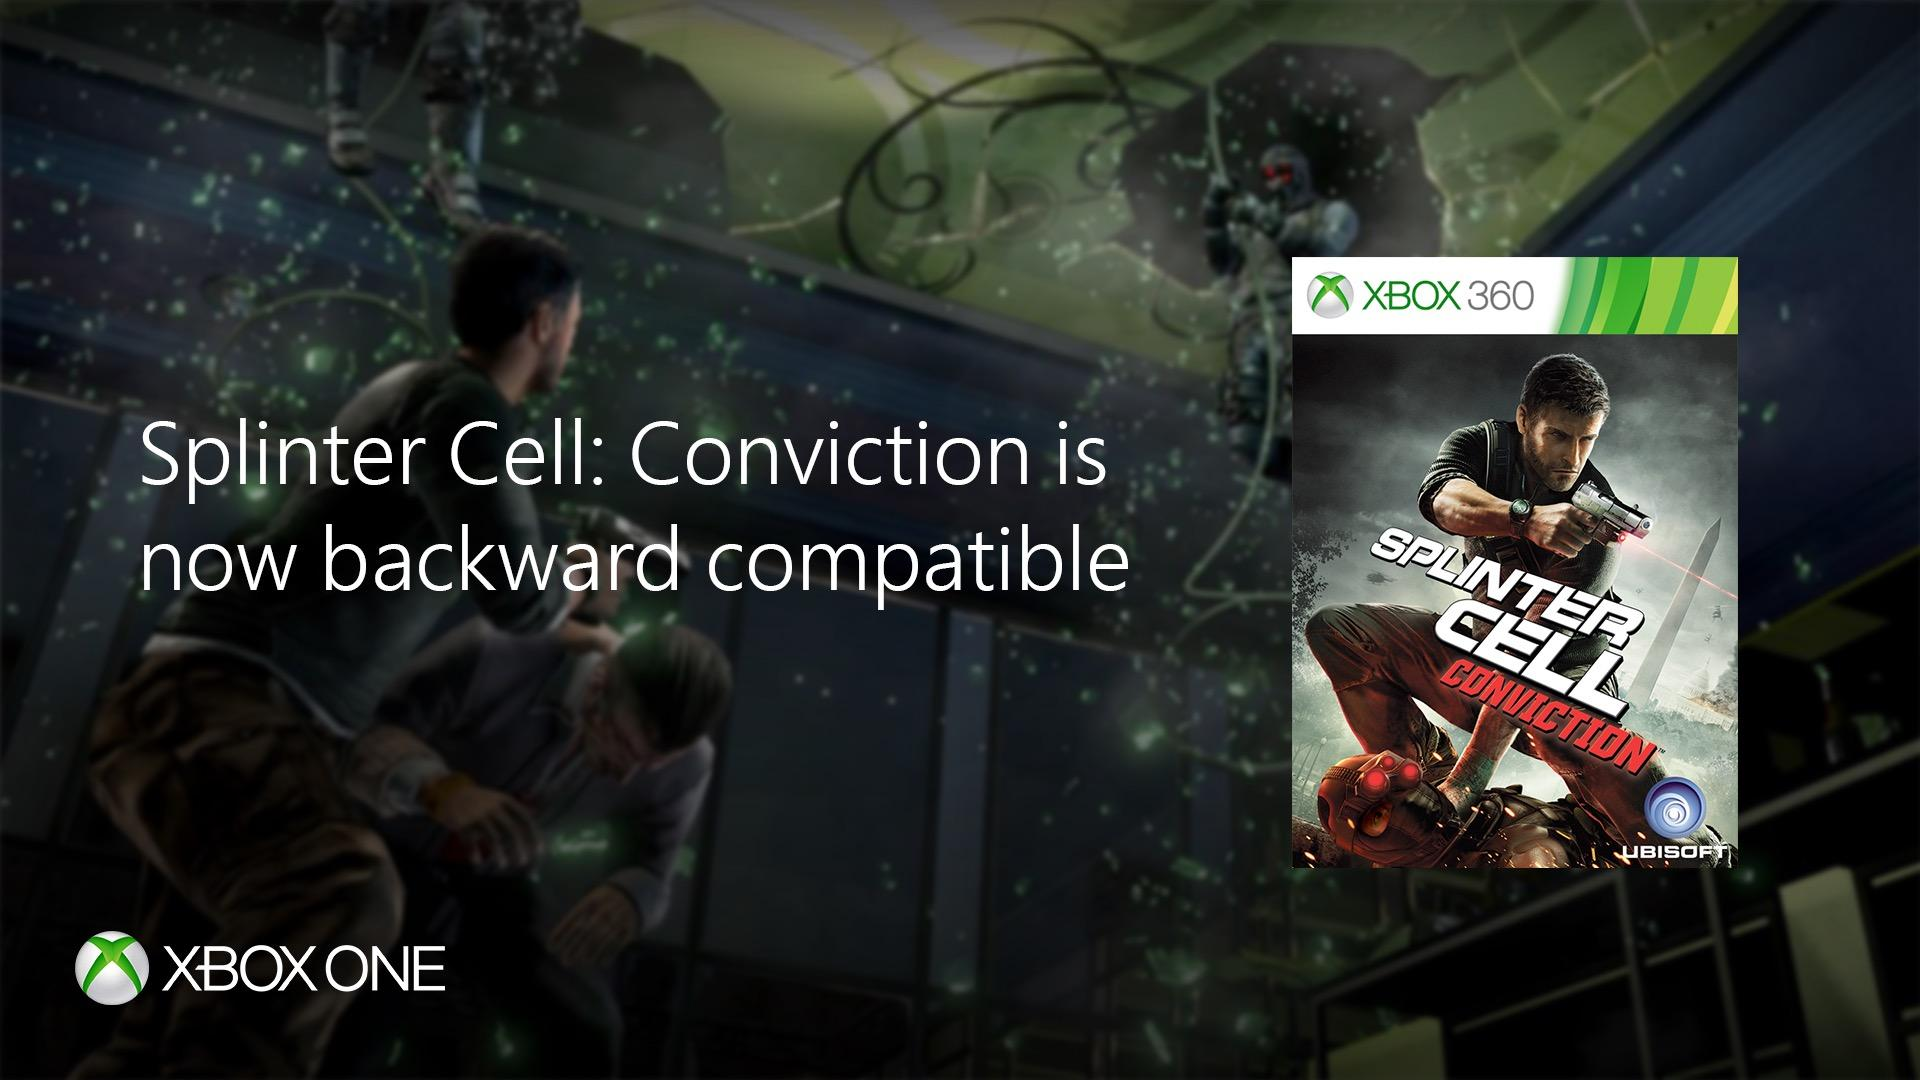 Conviction lands on Xbox One — Splinter Cell